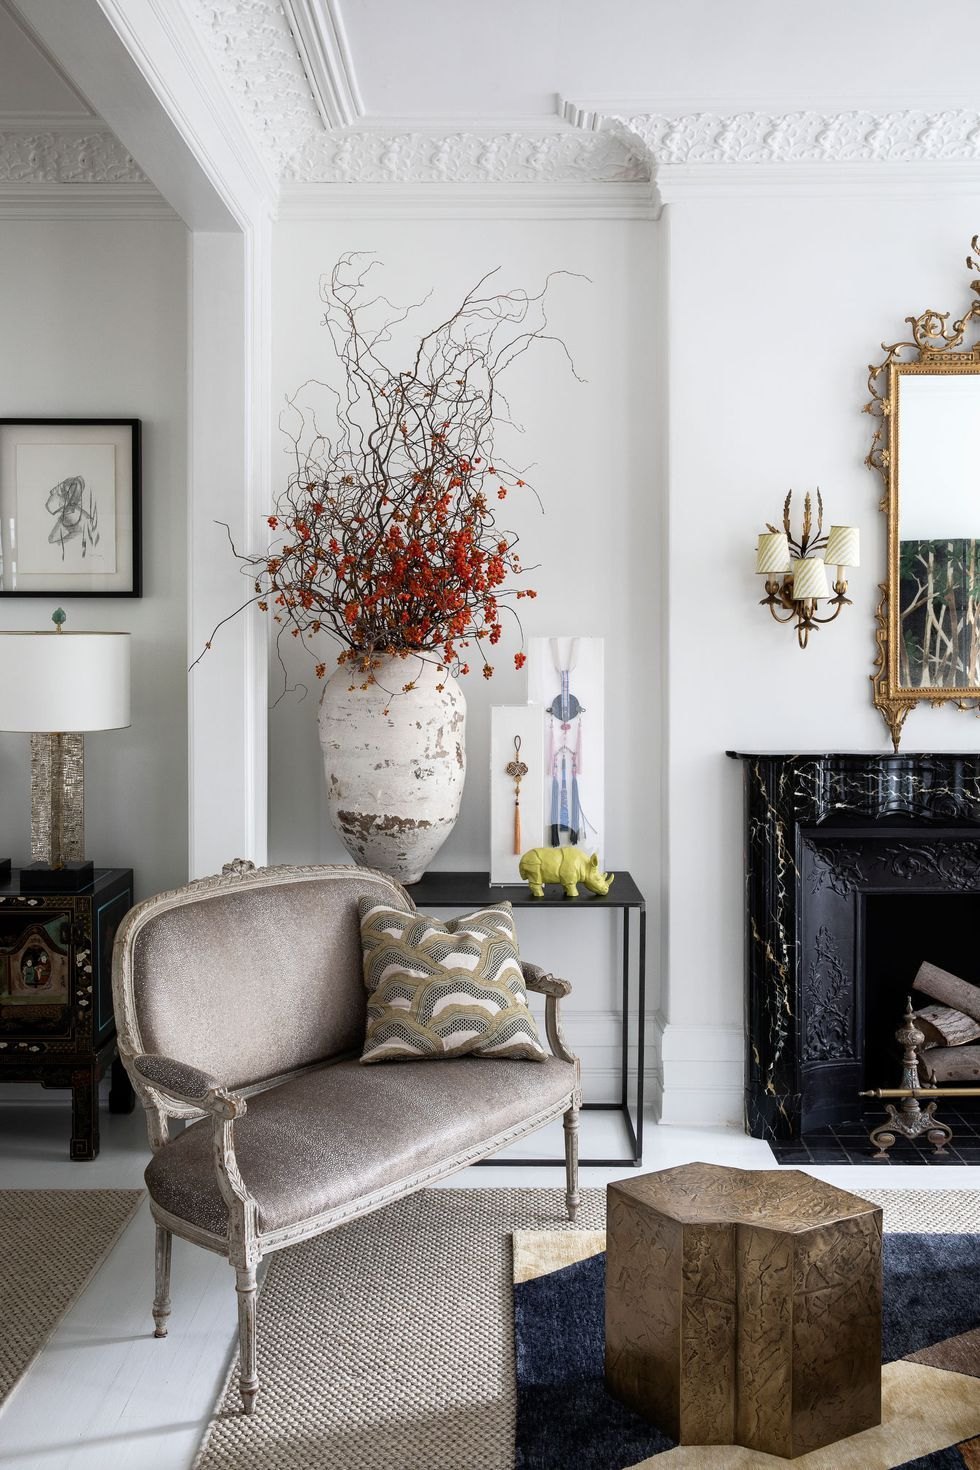 Living Room Decoration Ideas with Shop The Look Pins for Interior Design #interiordesign #homedecor